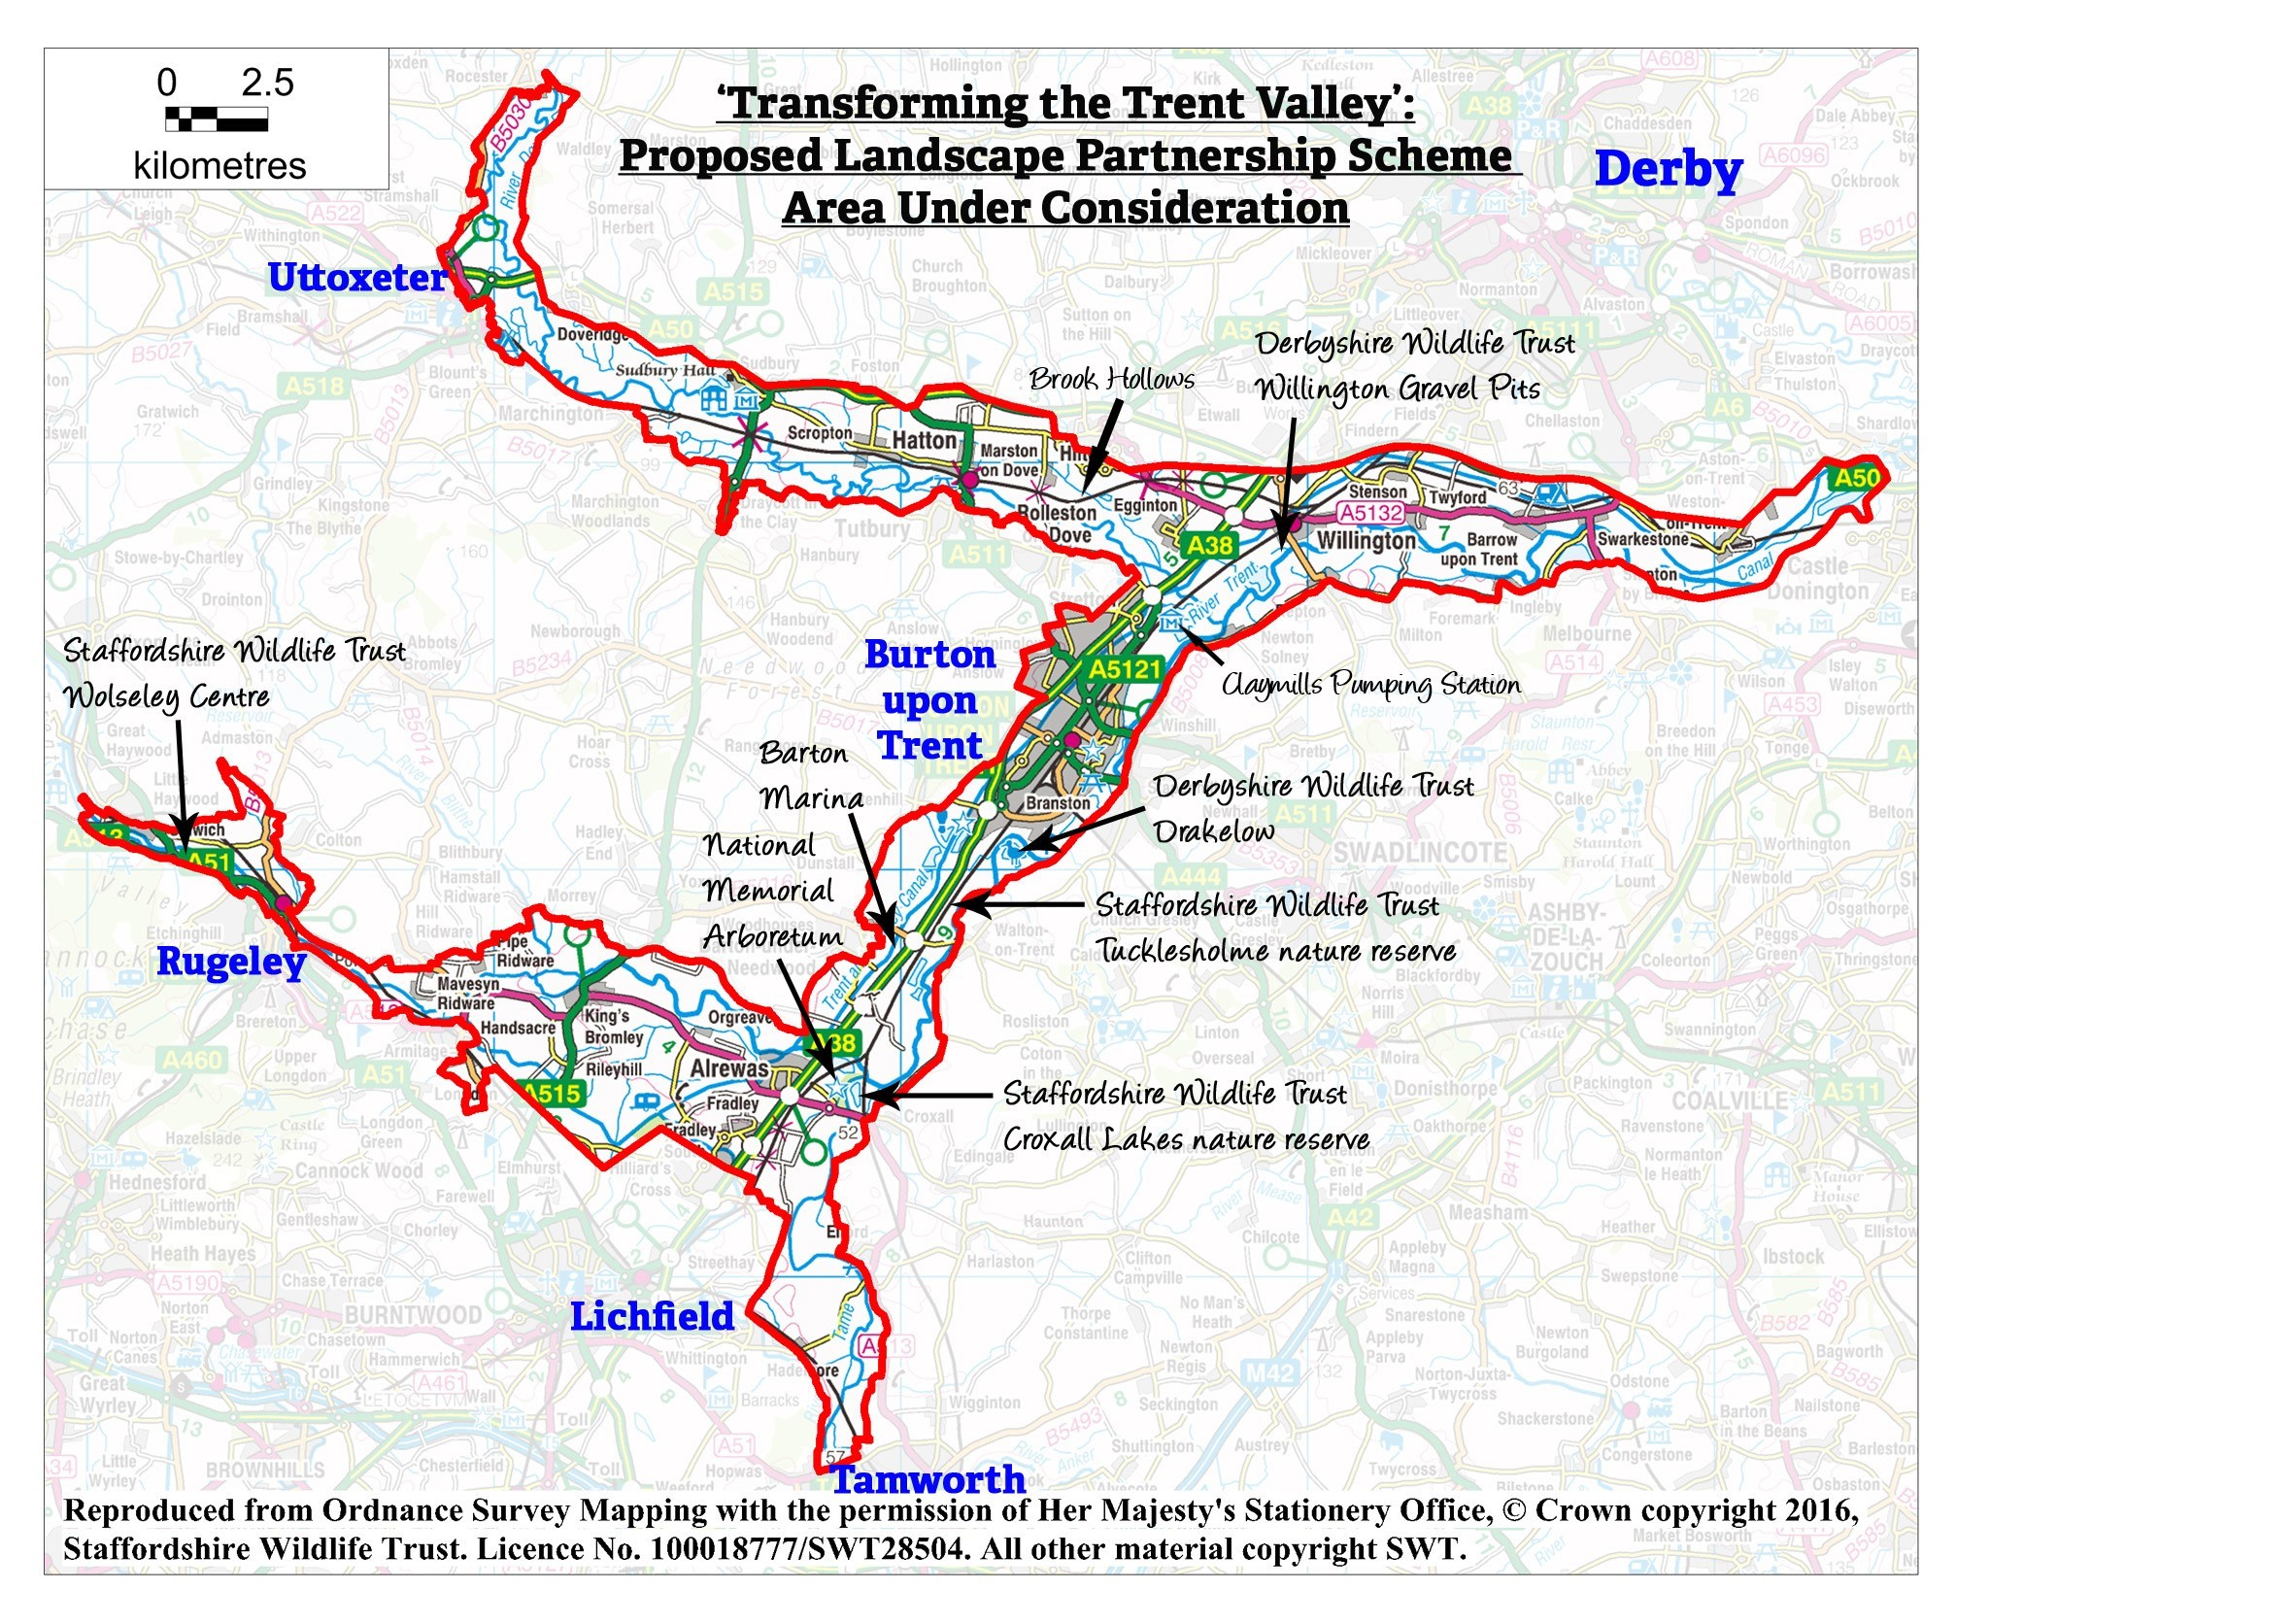 Transforming The Trent Valley project area